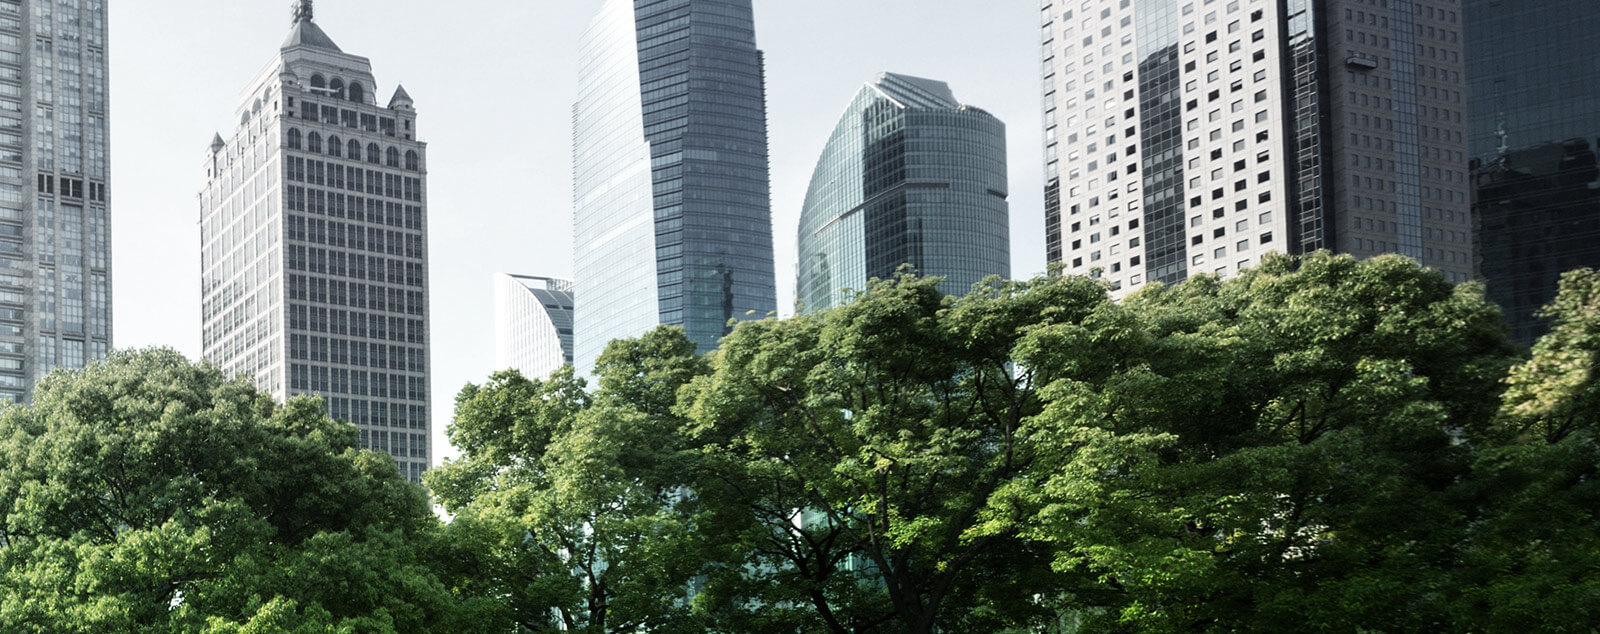 View of skyscrapers and trees